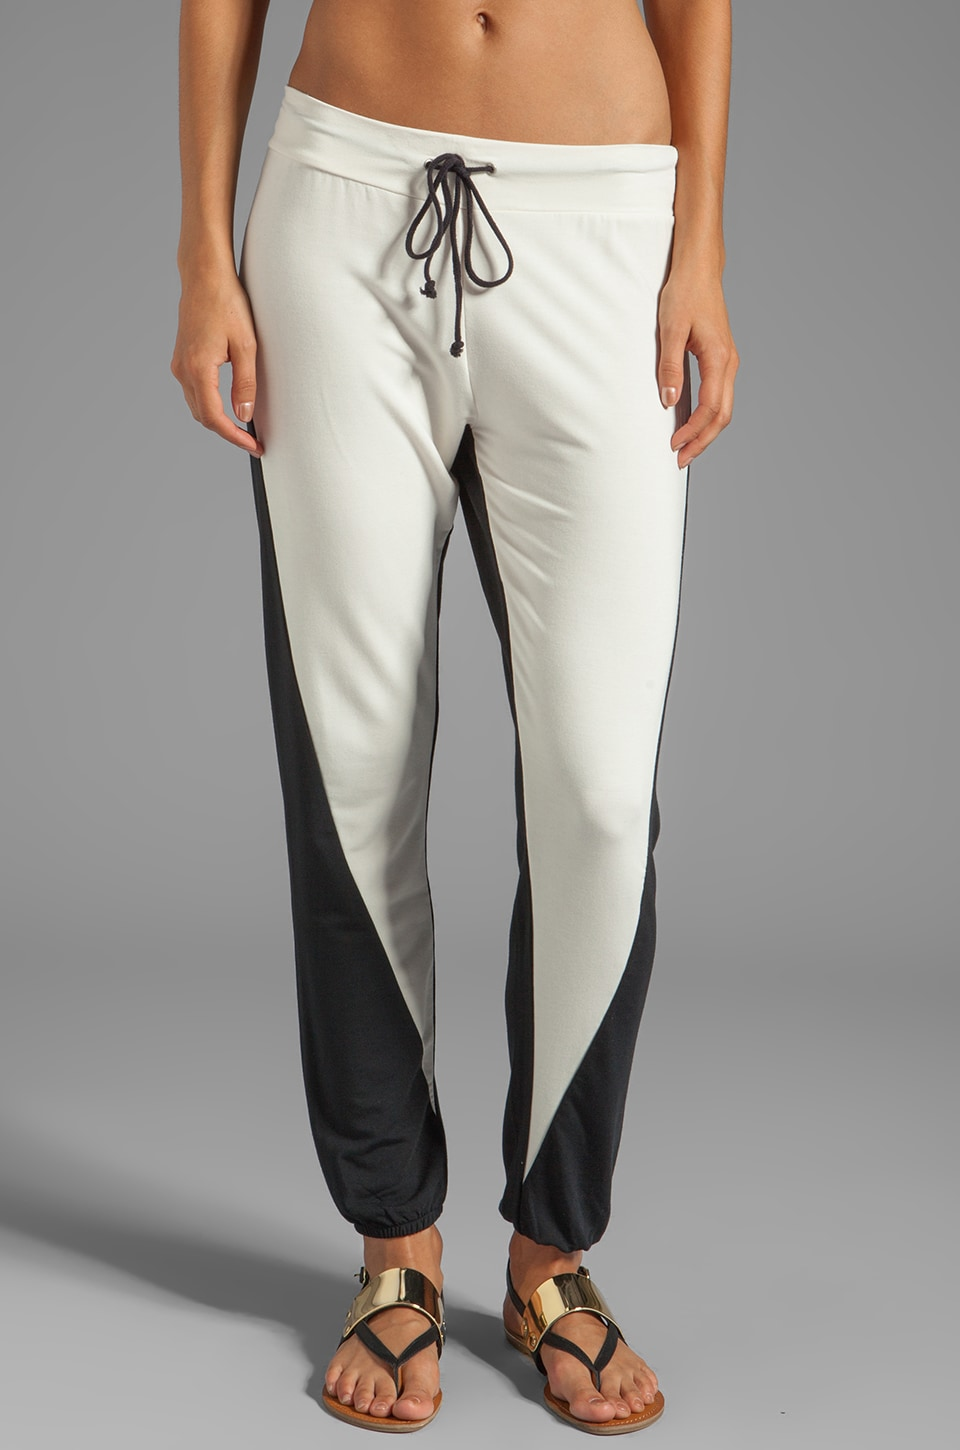 TOWNSEN Wren Pant in Cream/Black